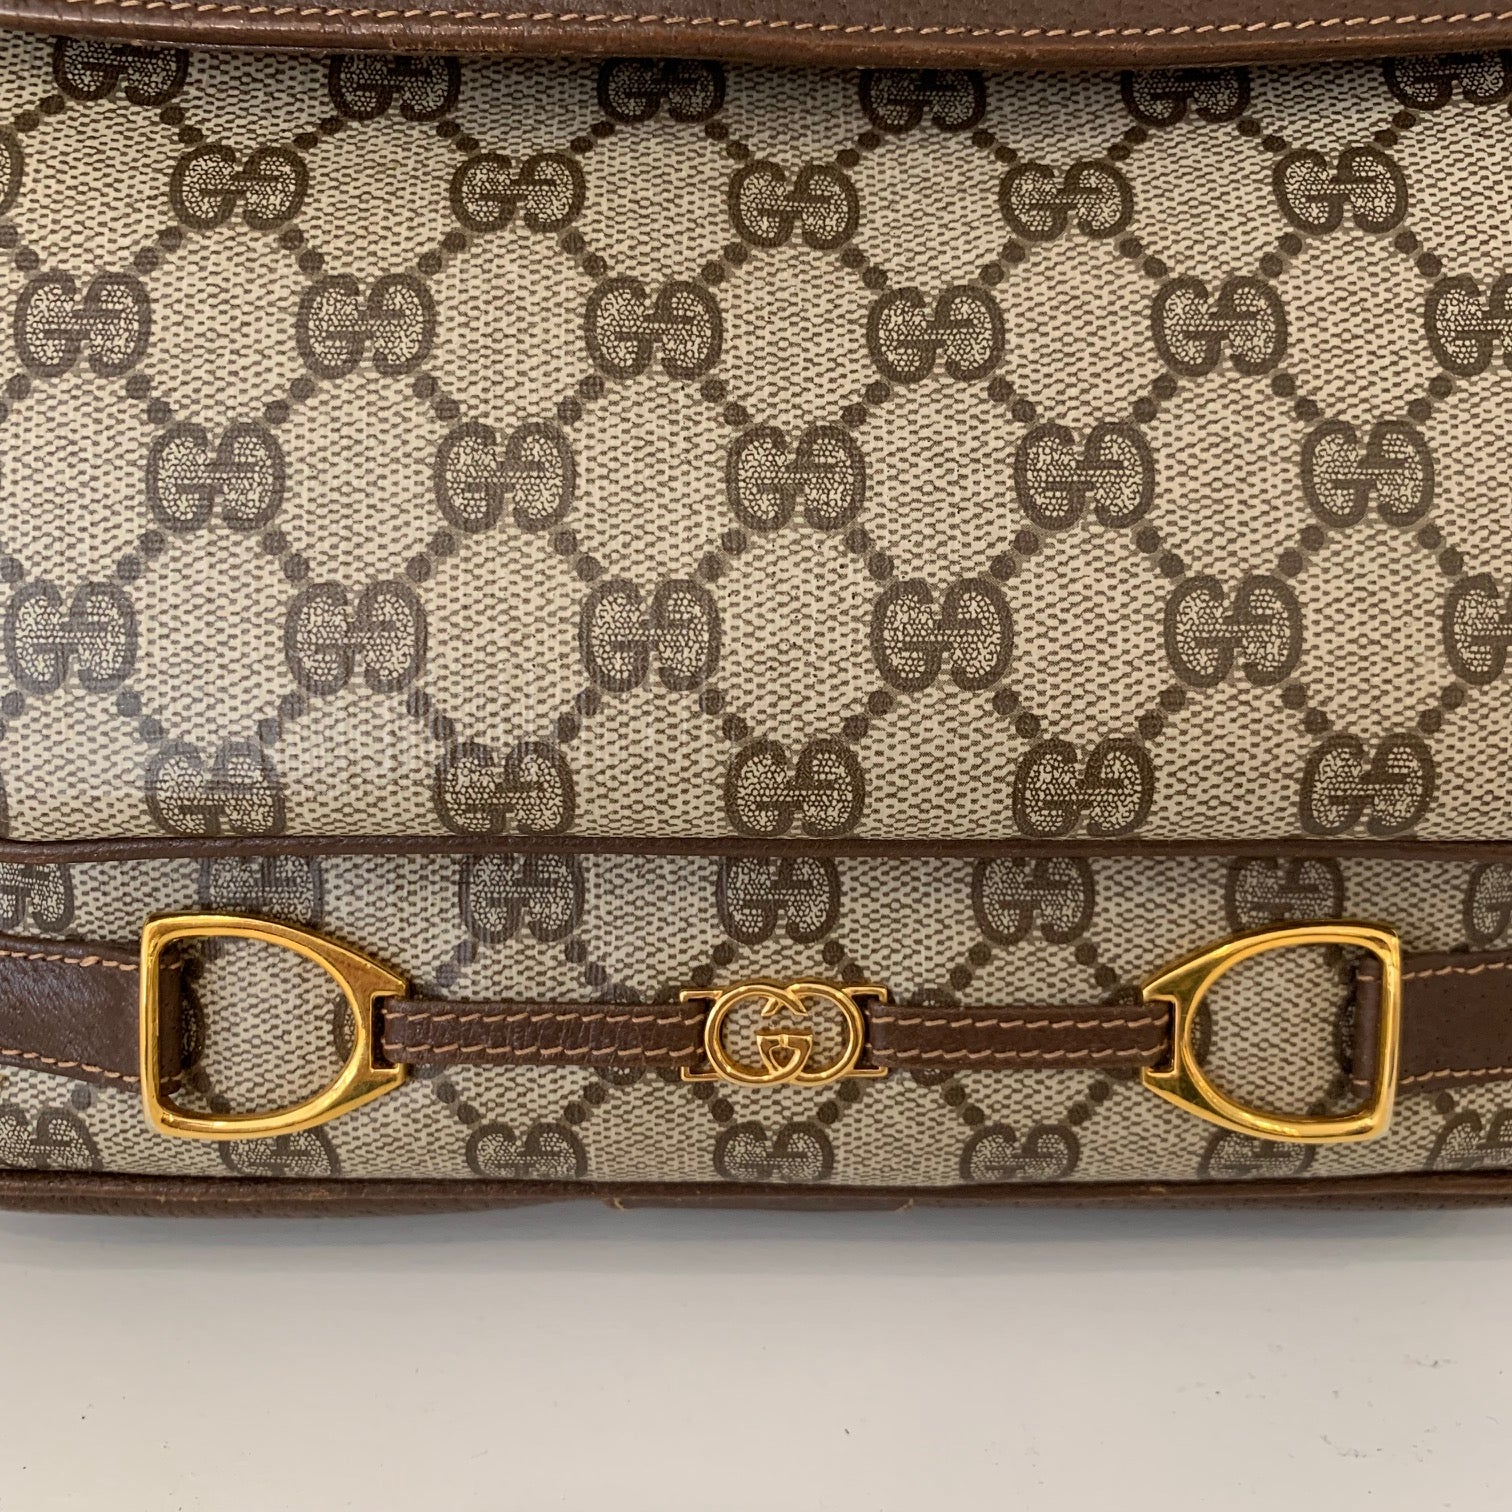 Gucci Vintage Shoulder/Cross body Bag